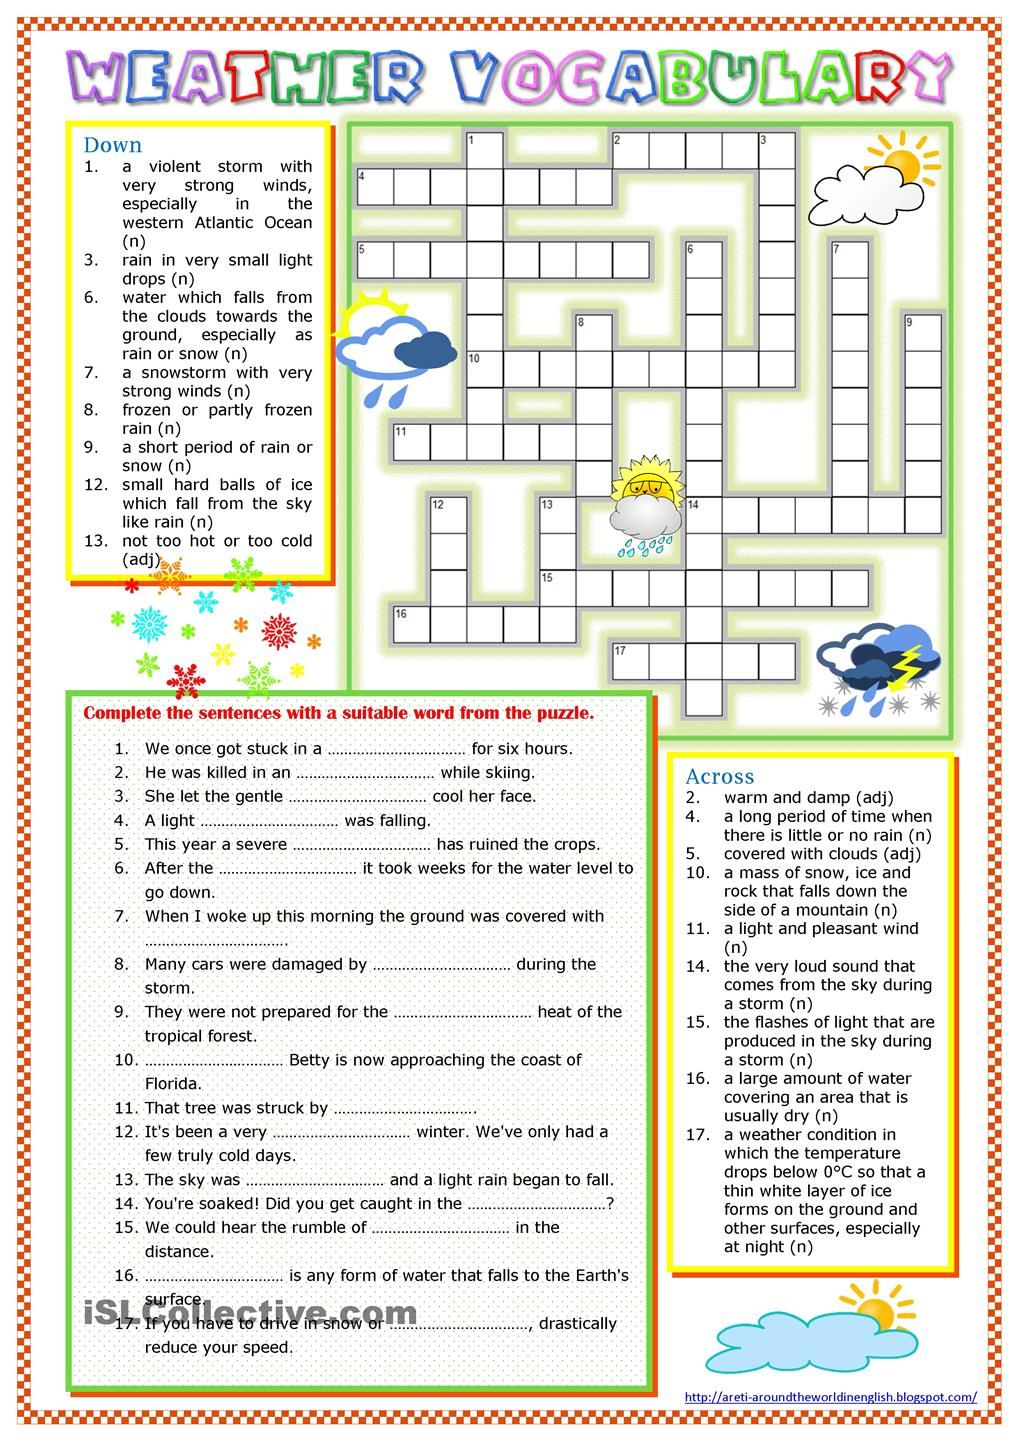 Workbooks weather expressions in spanish worksheets : Weather Vocabulary B2 | School | Pinterest | Weather, English and ...